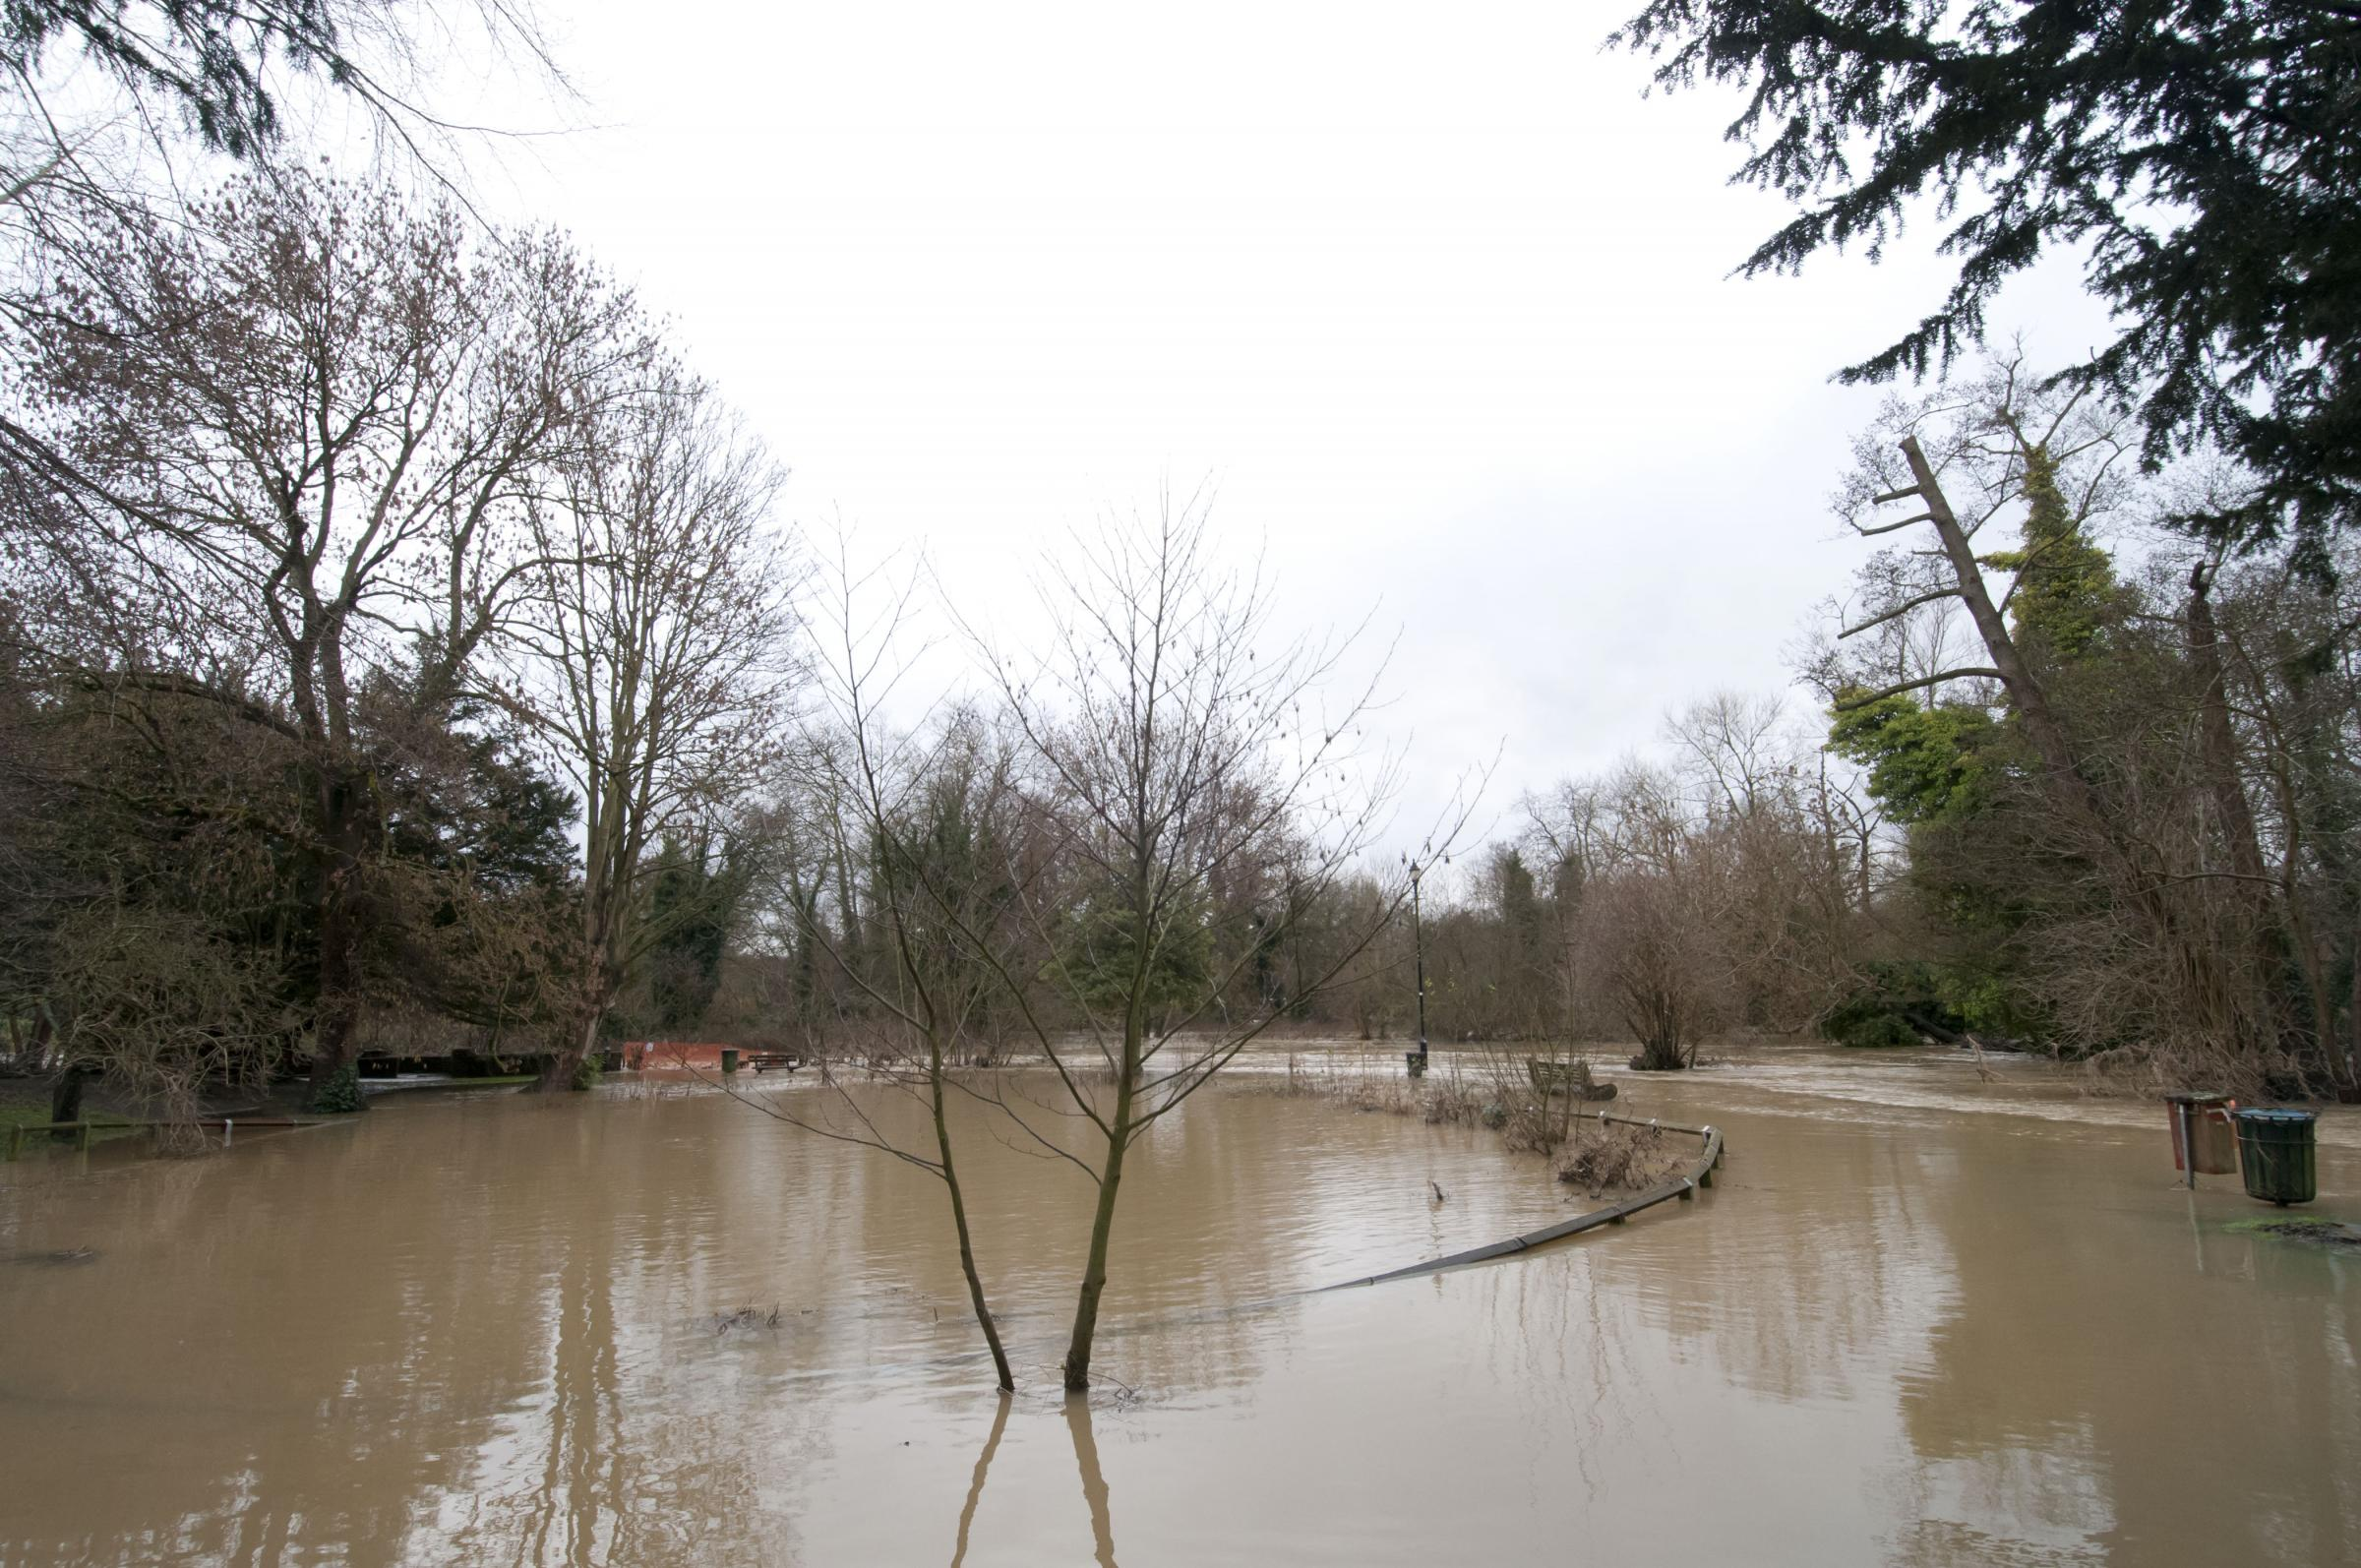 The River Mole has burst its banks more than once this month